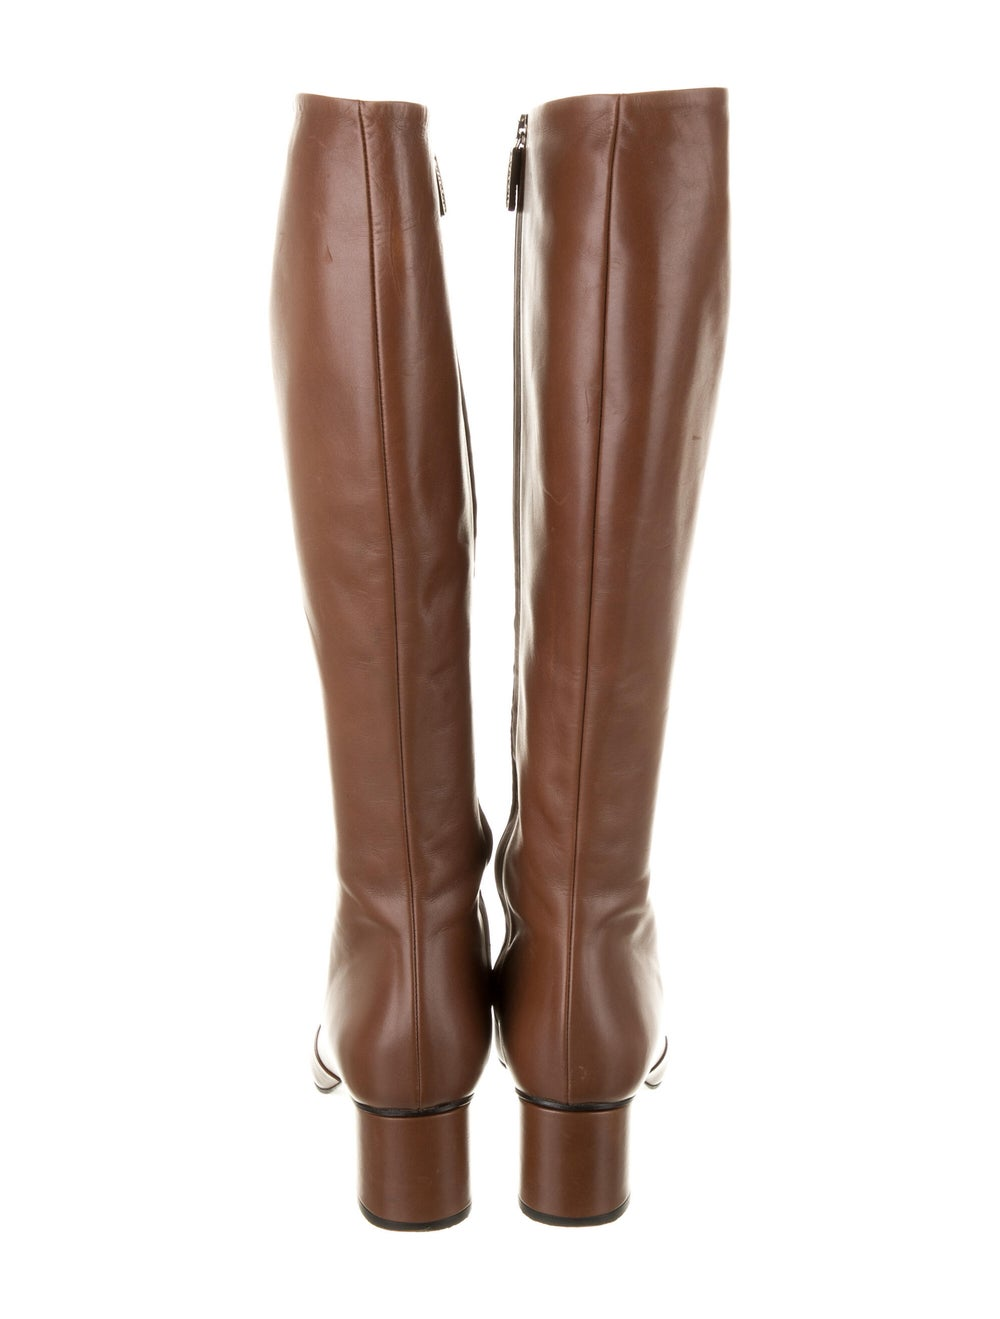 Gucci Horsebit Accent Leather Riding Boots Brown - image 4